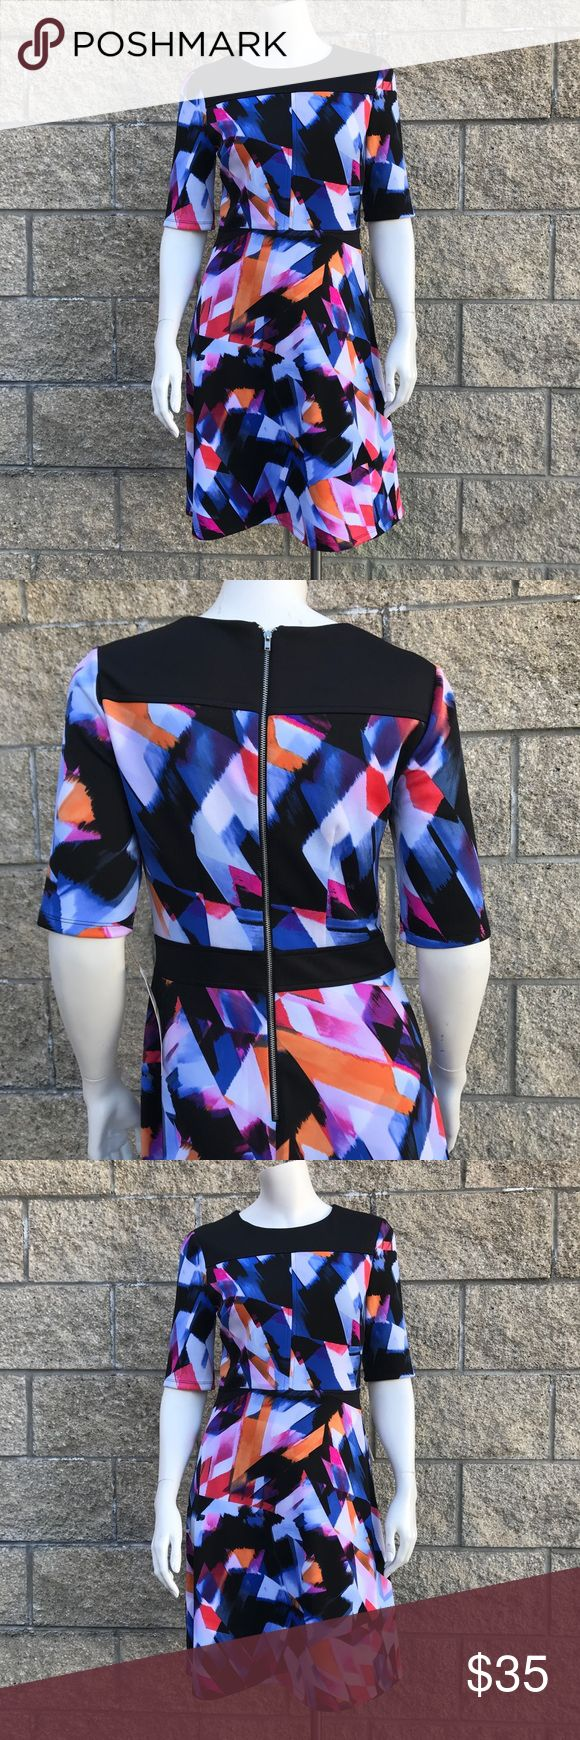 """Maggy L Abstract Skater Dress Maggy L multi colors abstract print, back zipped, stretch, short sleeve, this dress sits just above the knee length. 94% polyester, 6% spandex. 16 1/2"""" chest, 35"""" waist, 35 1/2"""" length. Maggy L Dresses Midi"""